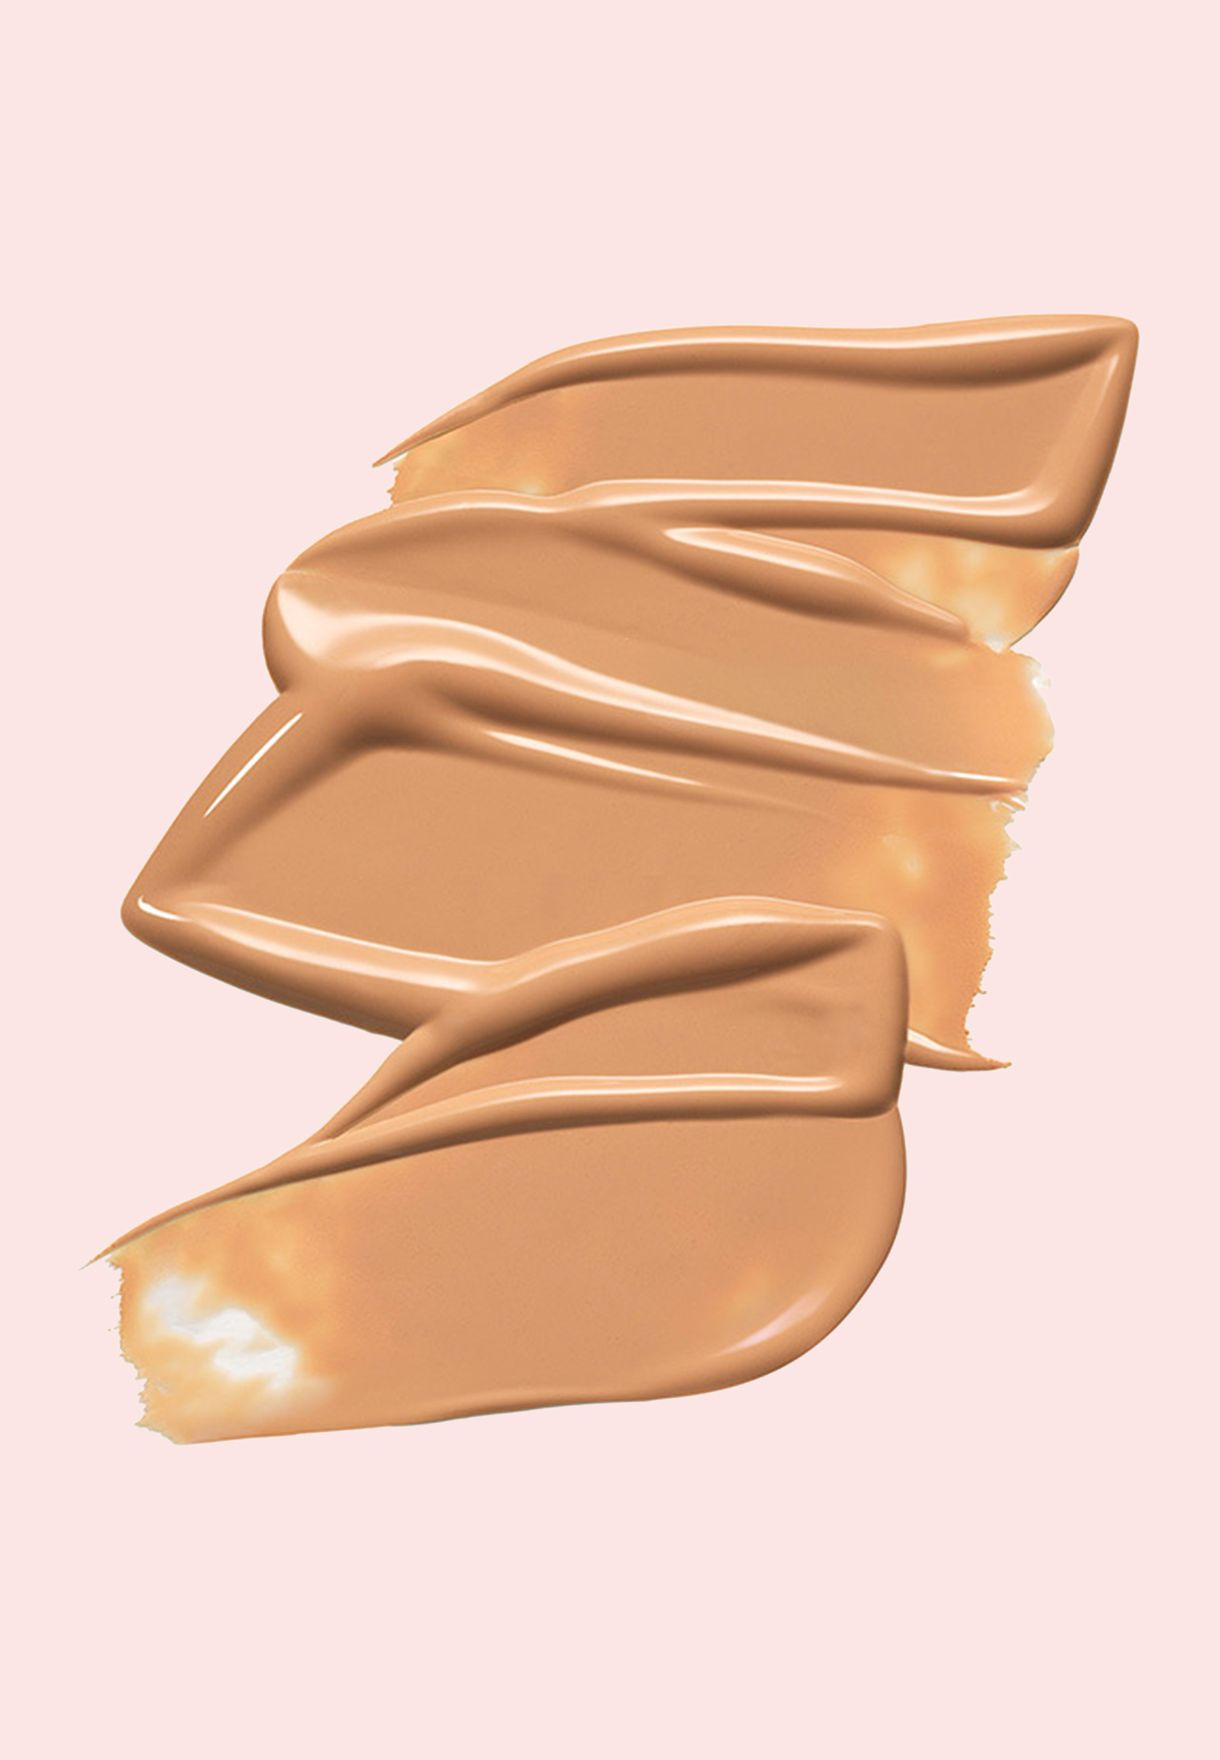 Studio Fix Fluid SPF 15 Foundation - NC35